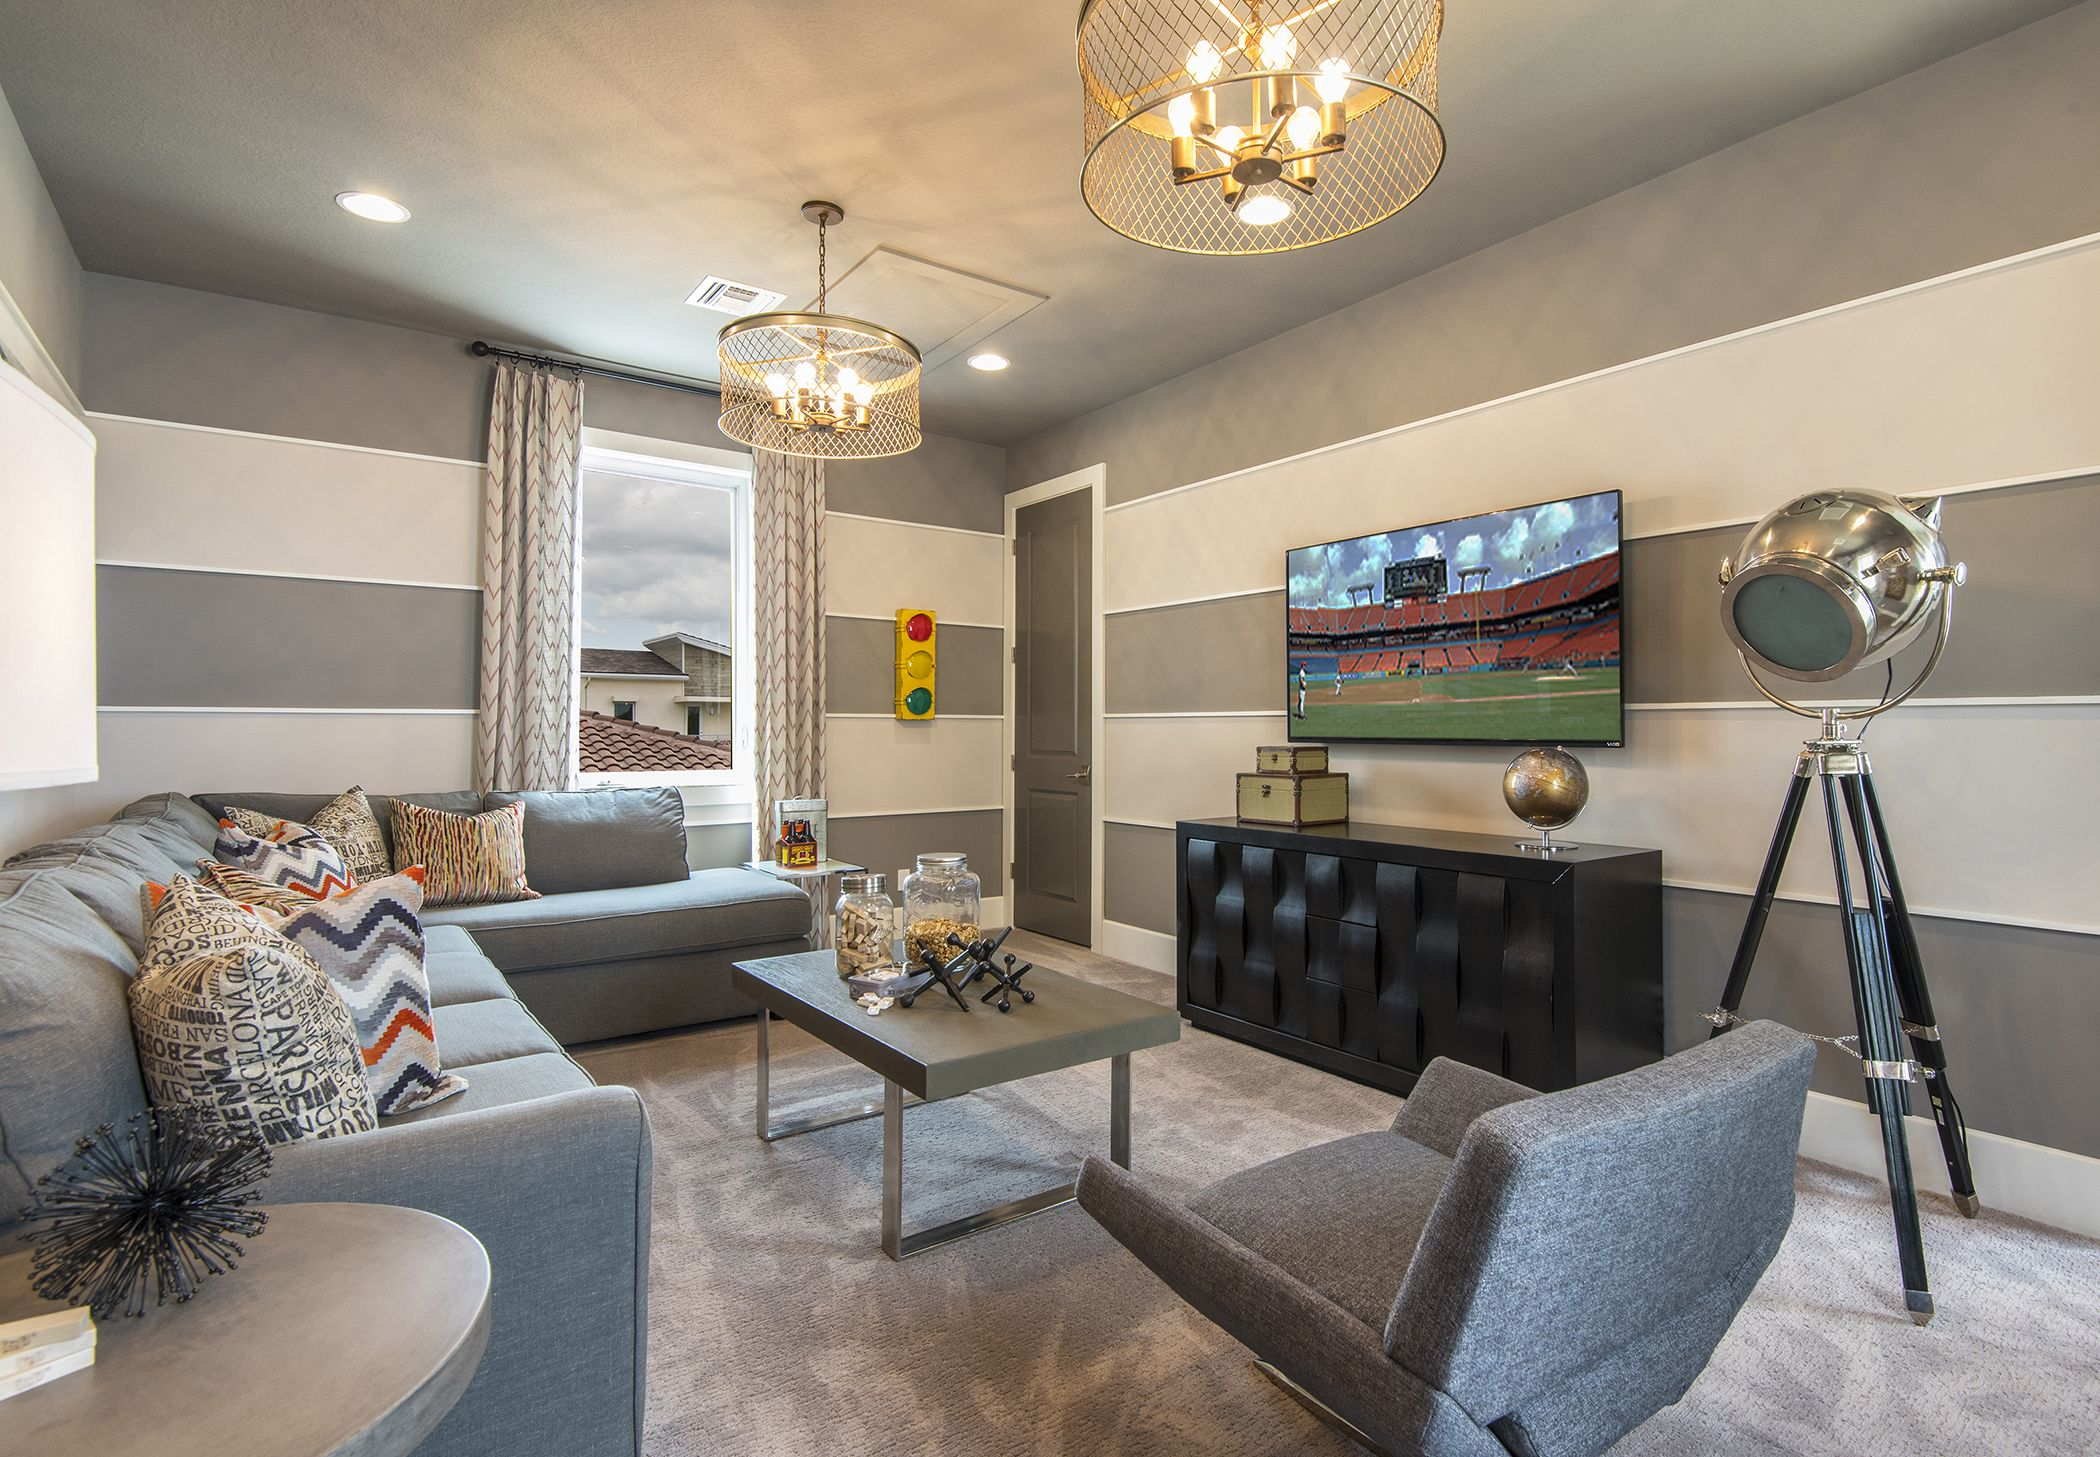 This teen's hangout room is sophisticated, yet functional